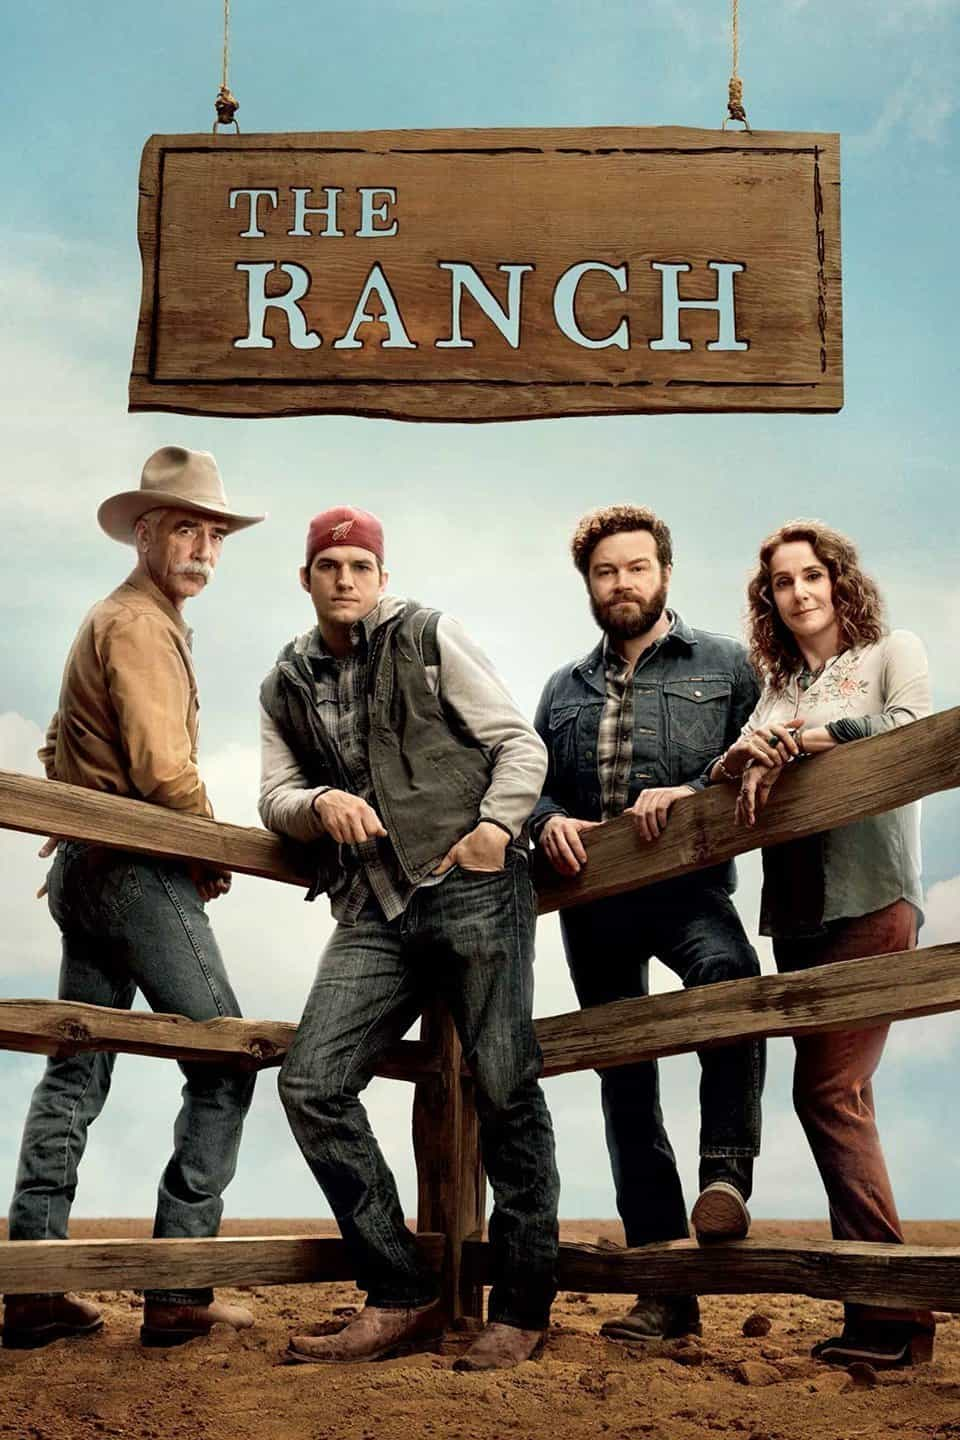 The Ranch, 2016